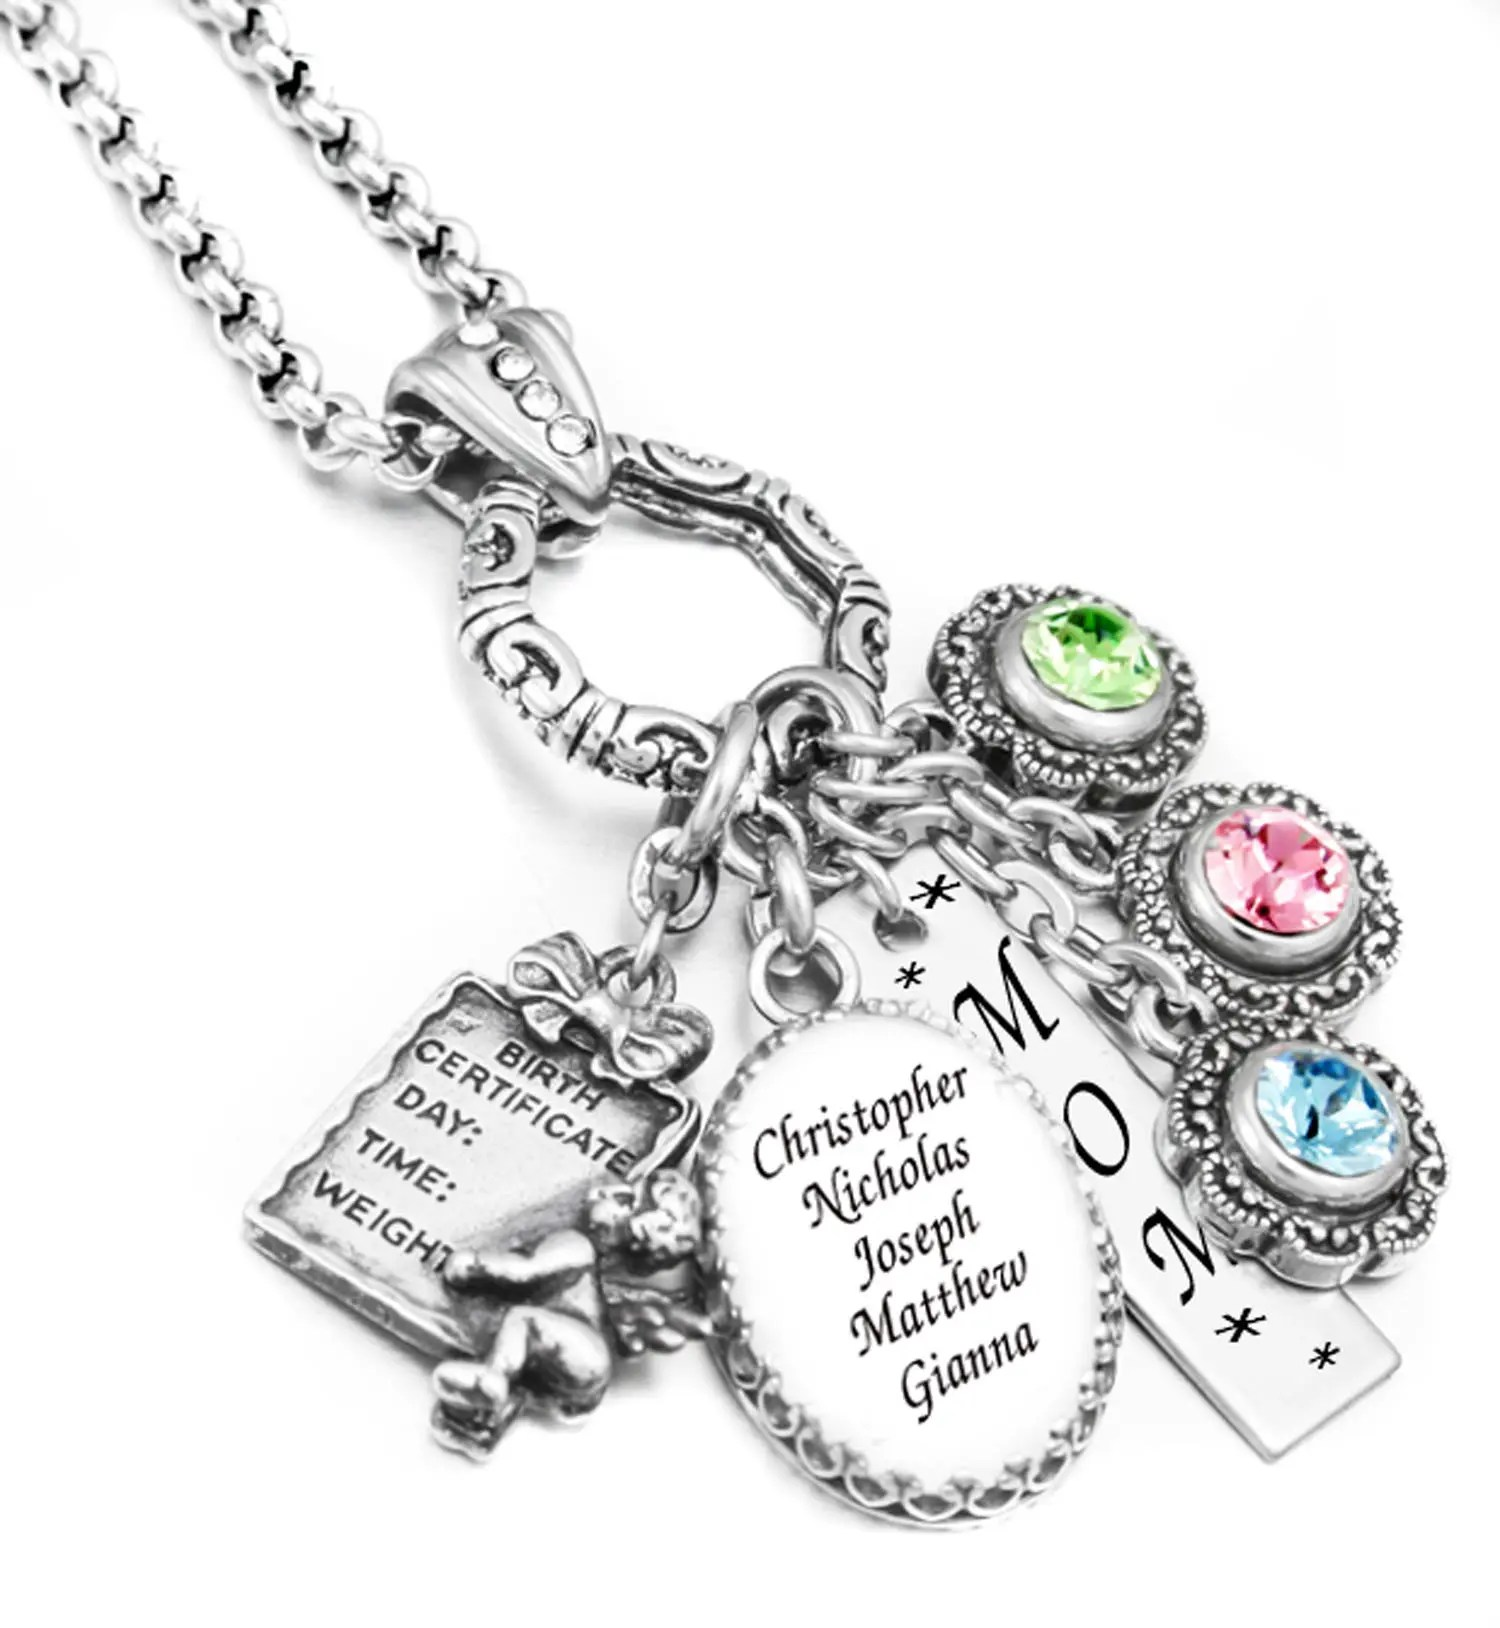 Personalized Mothers Necklace Birthstone Necklace Family